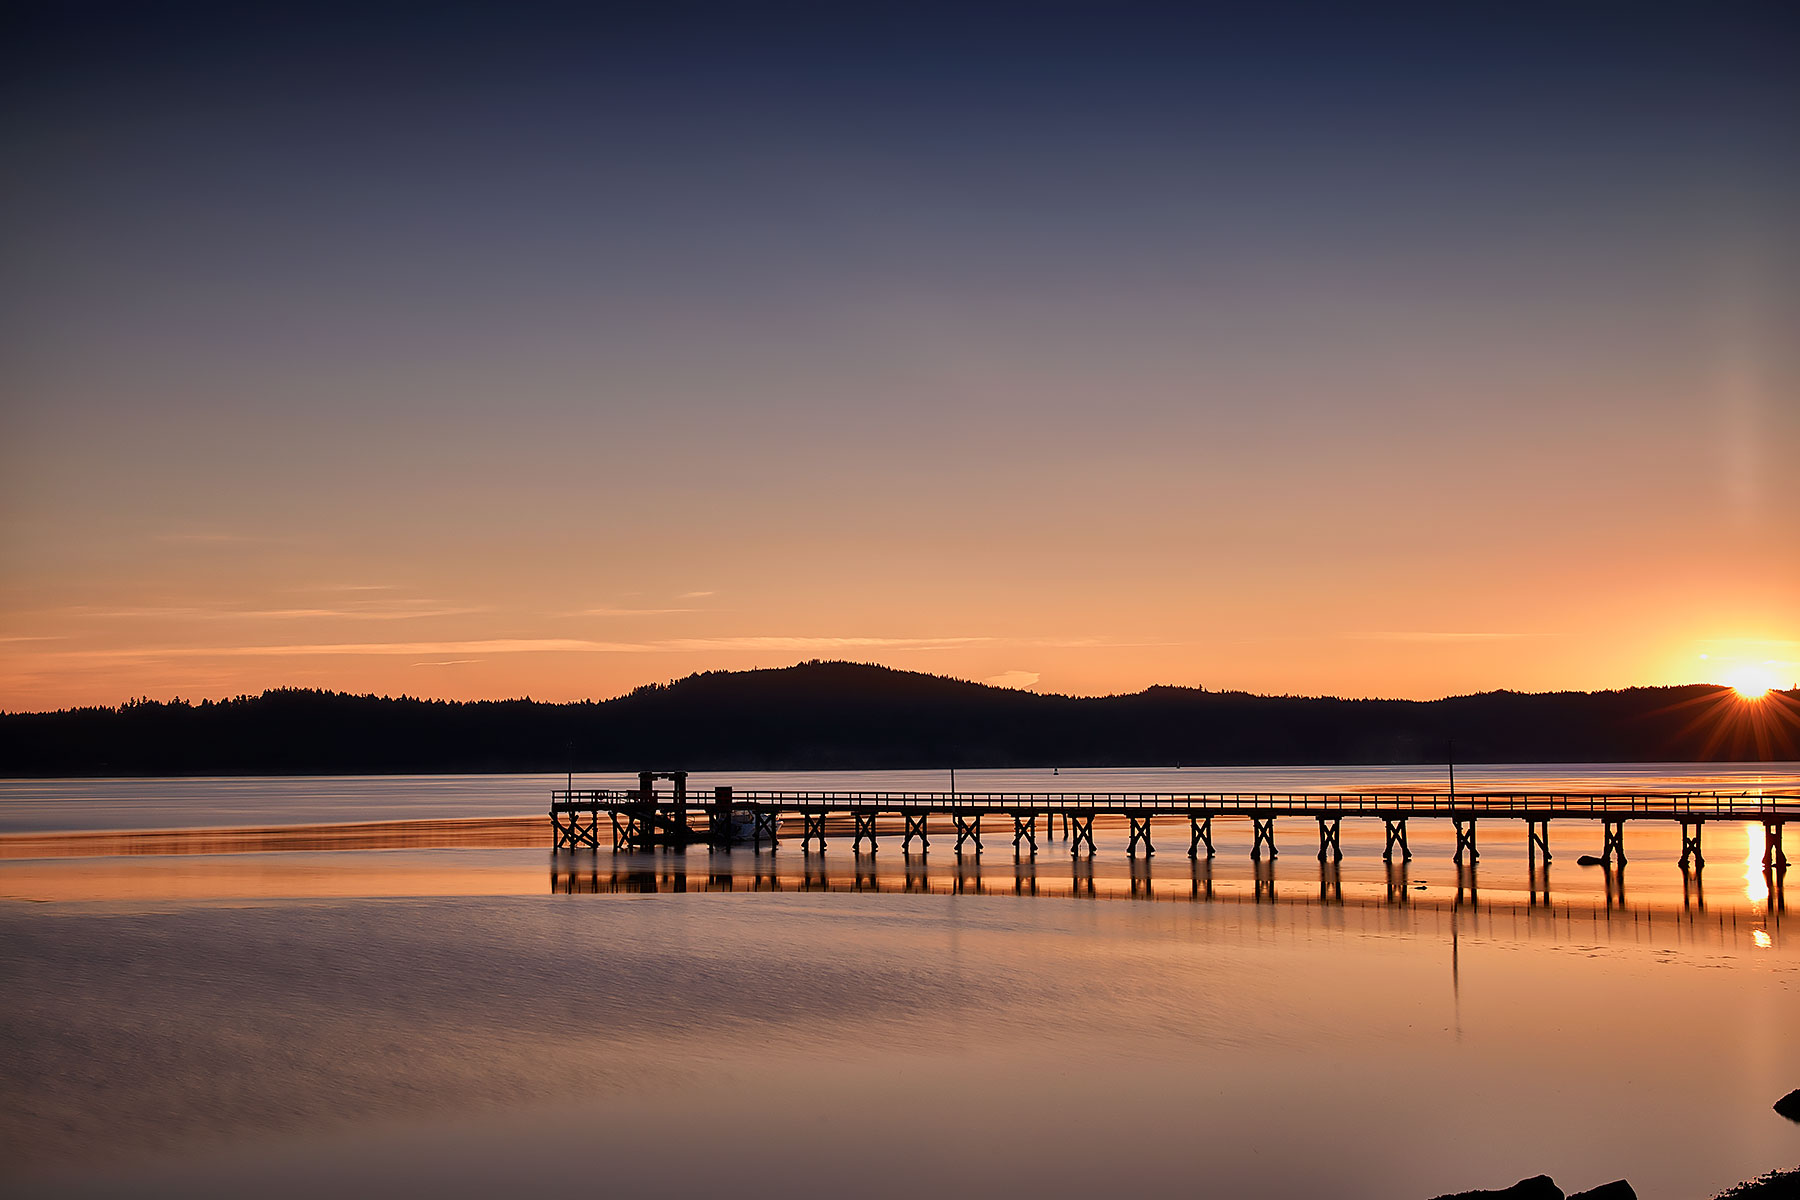 Fenwood Pier Sunrise ©johncameron.ca